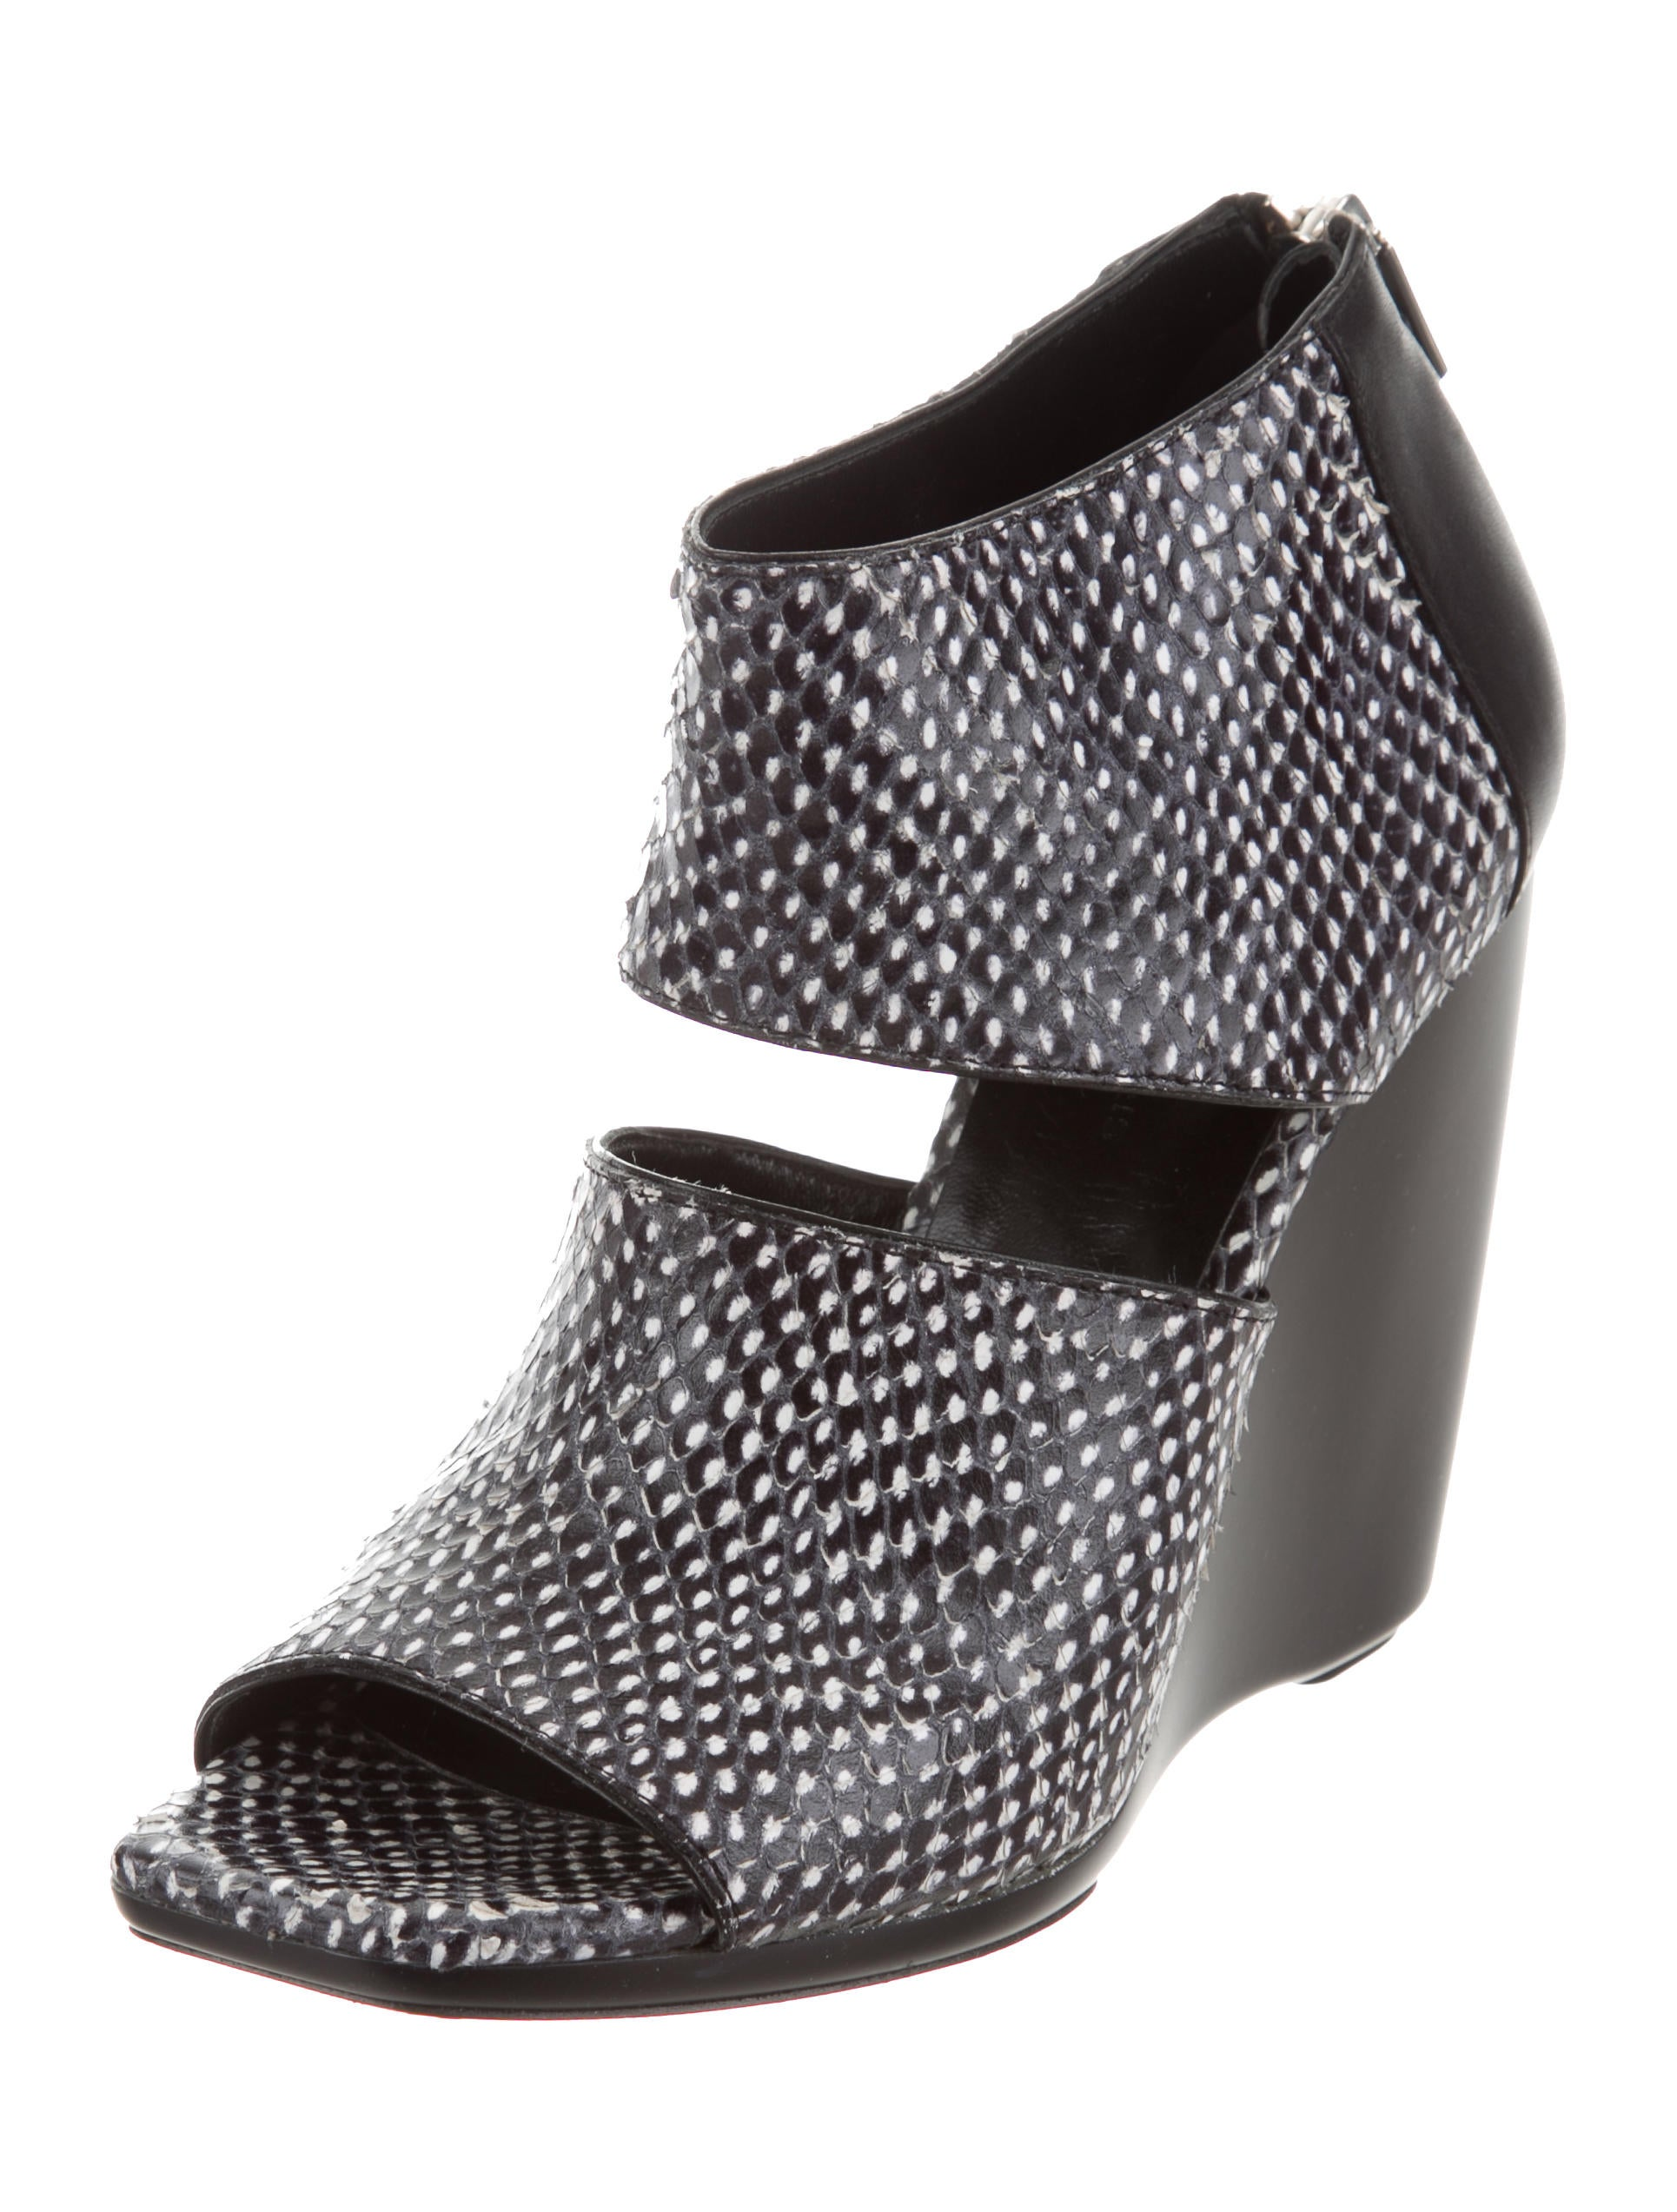 Balenciaga Snakeskin Cutout Wedges fashion Style cheap online deals official find great cheap online jLY437s